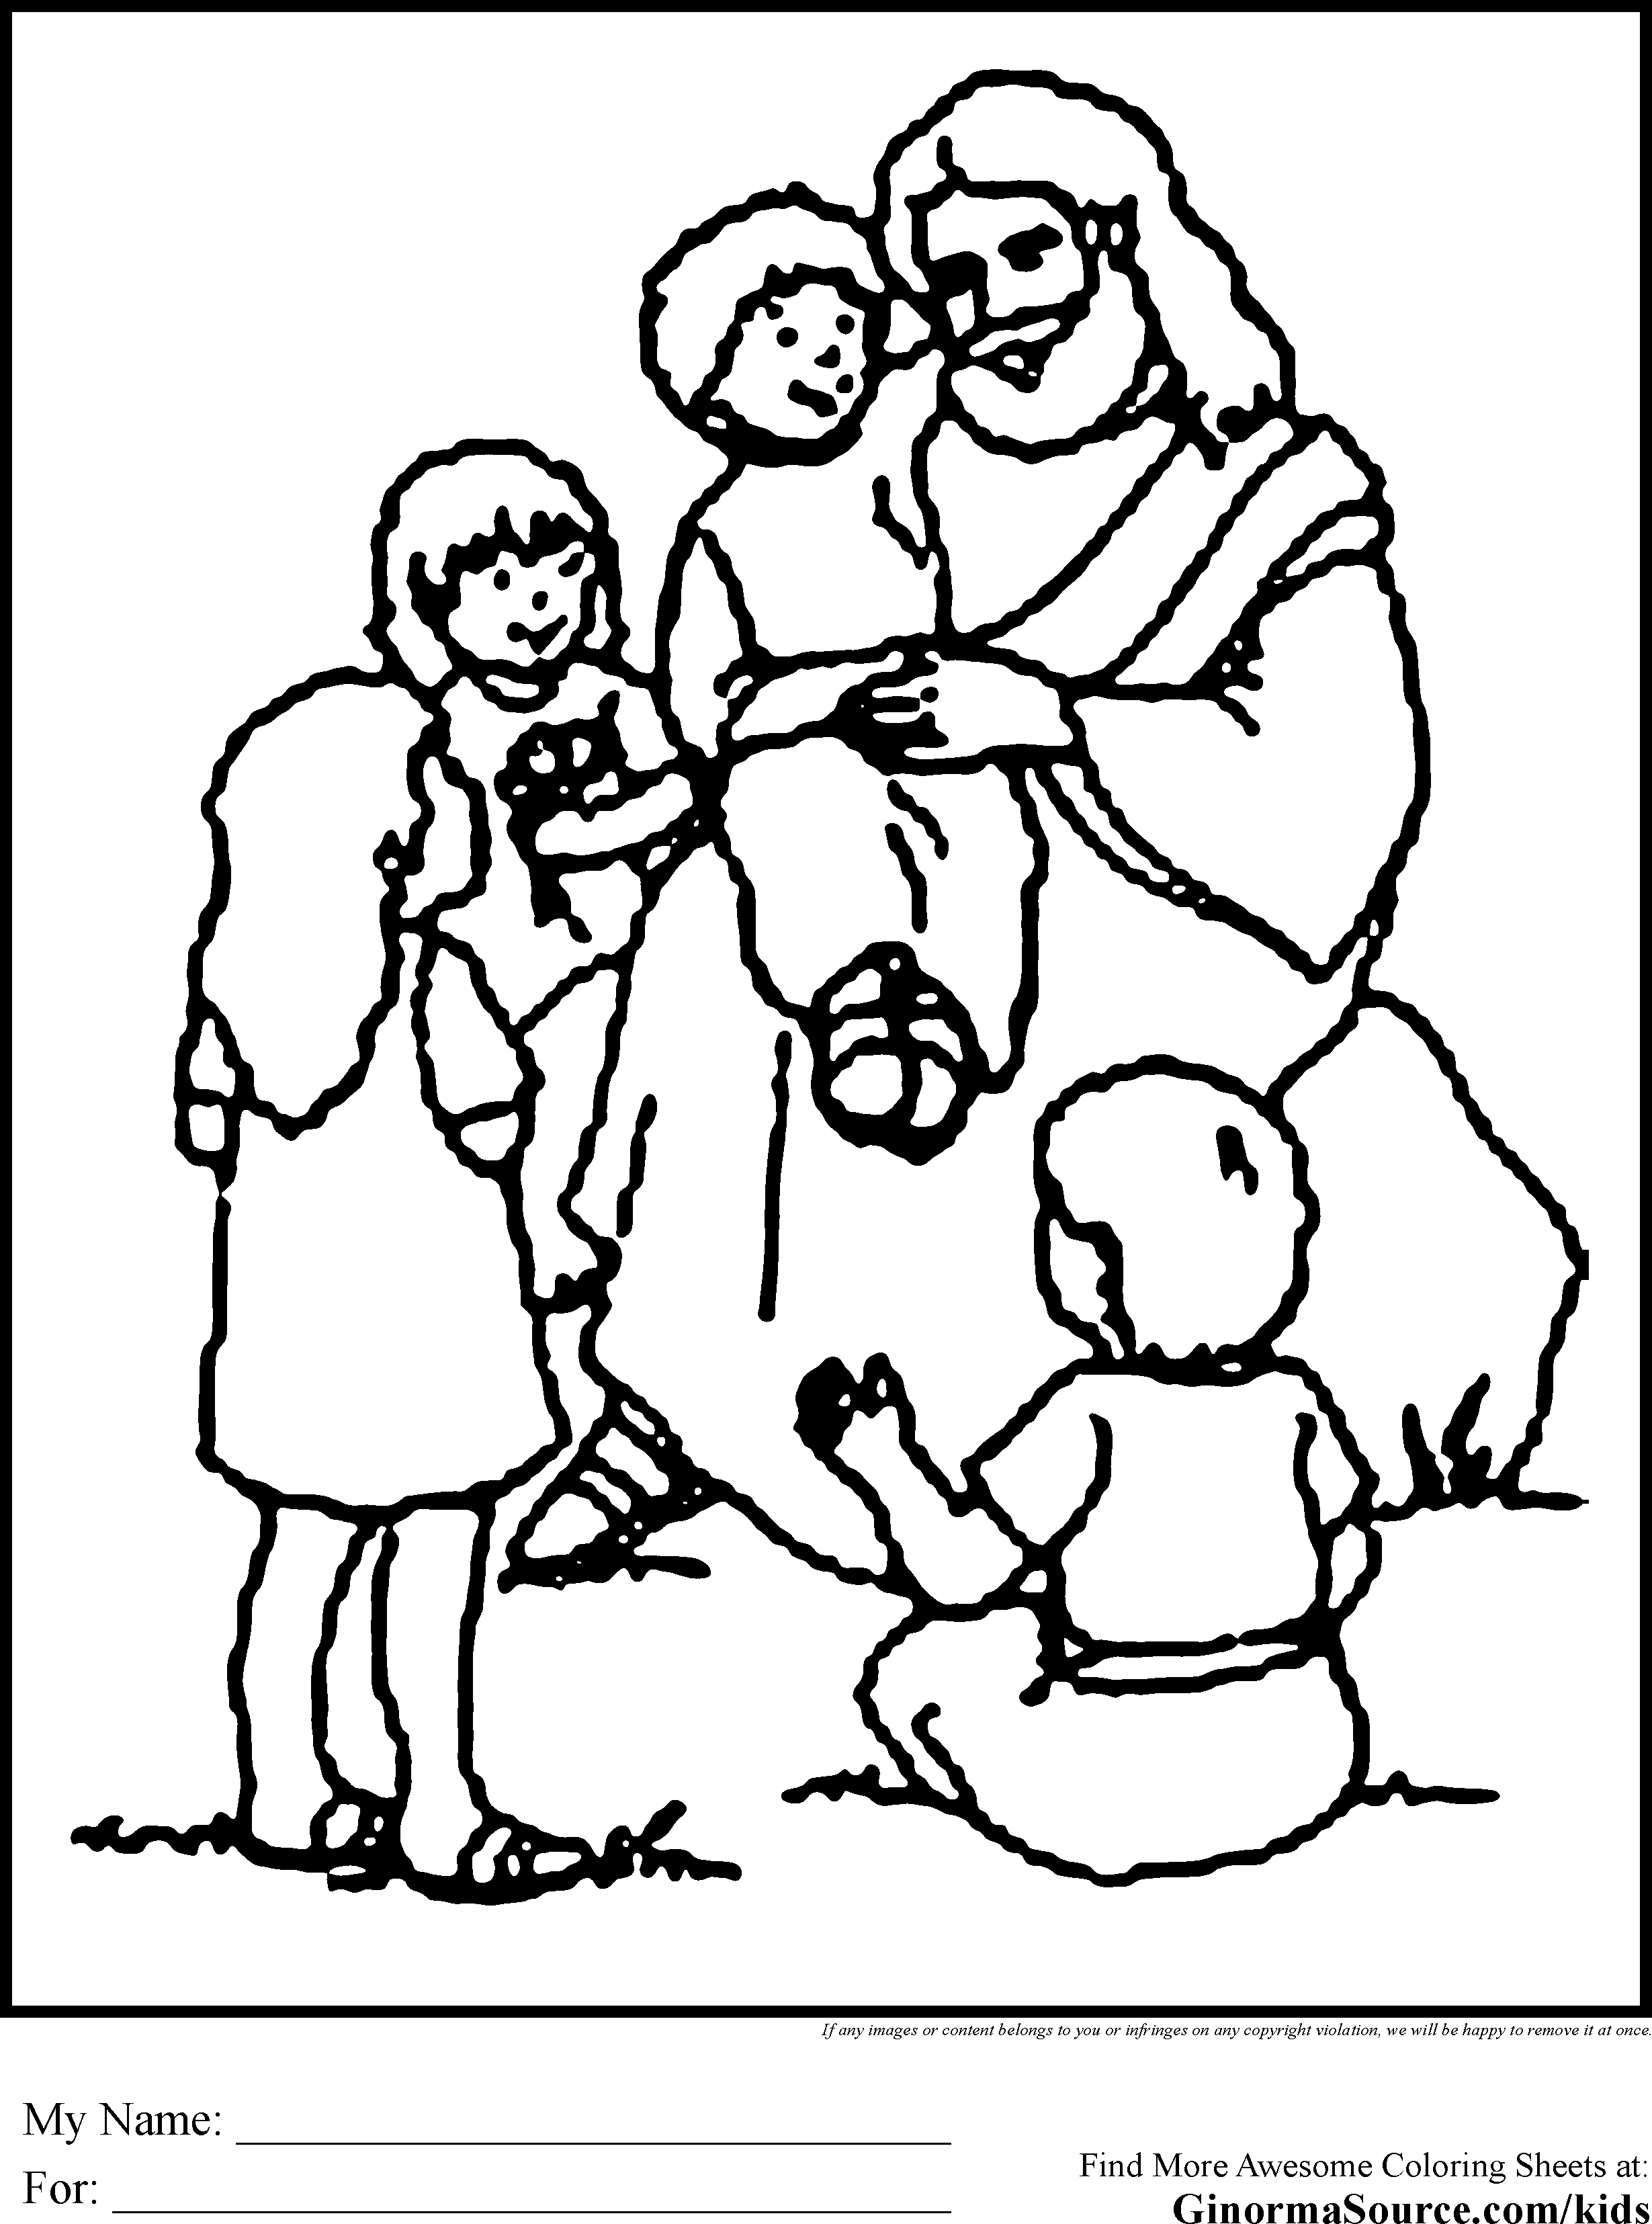 Coloring pages about jesus